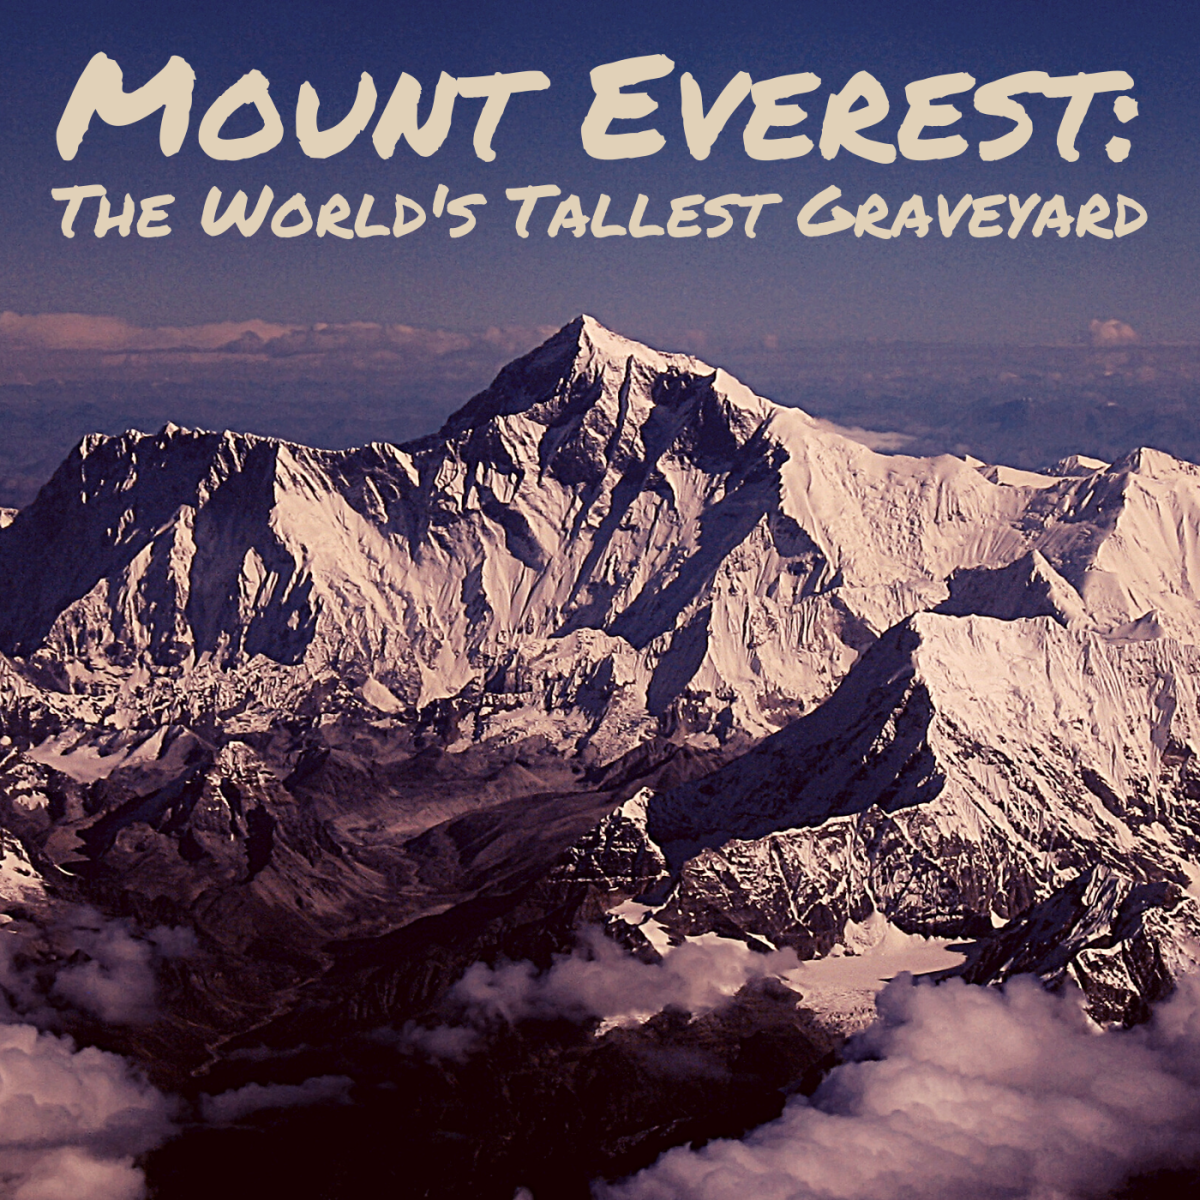 The Bodies of Mount Everest, the World's Highest Graveyard